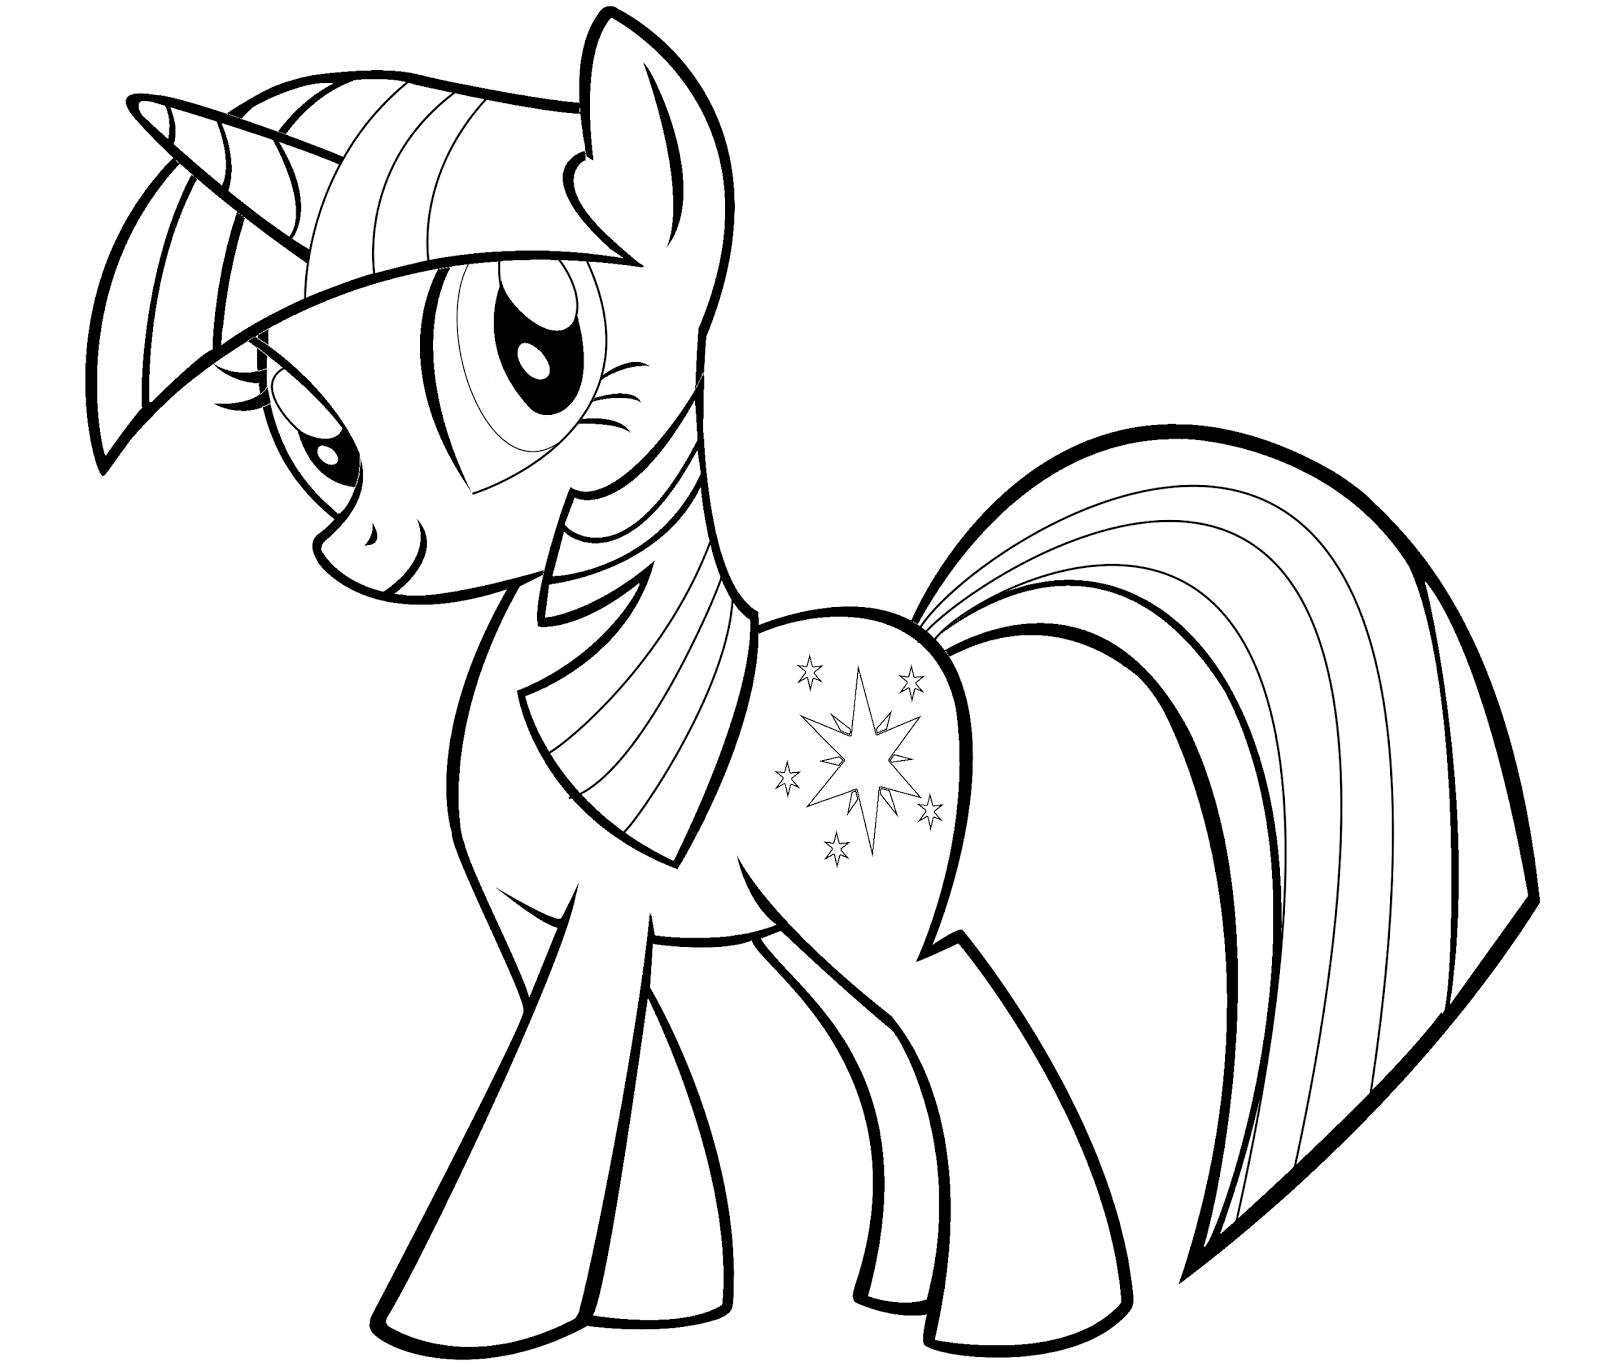 twilight sparkle colouring pages twilight sparkle coloring pages best coloring pages for kids colouring sparkle pages twilight